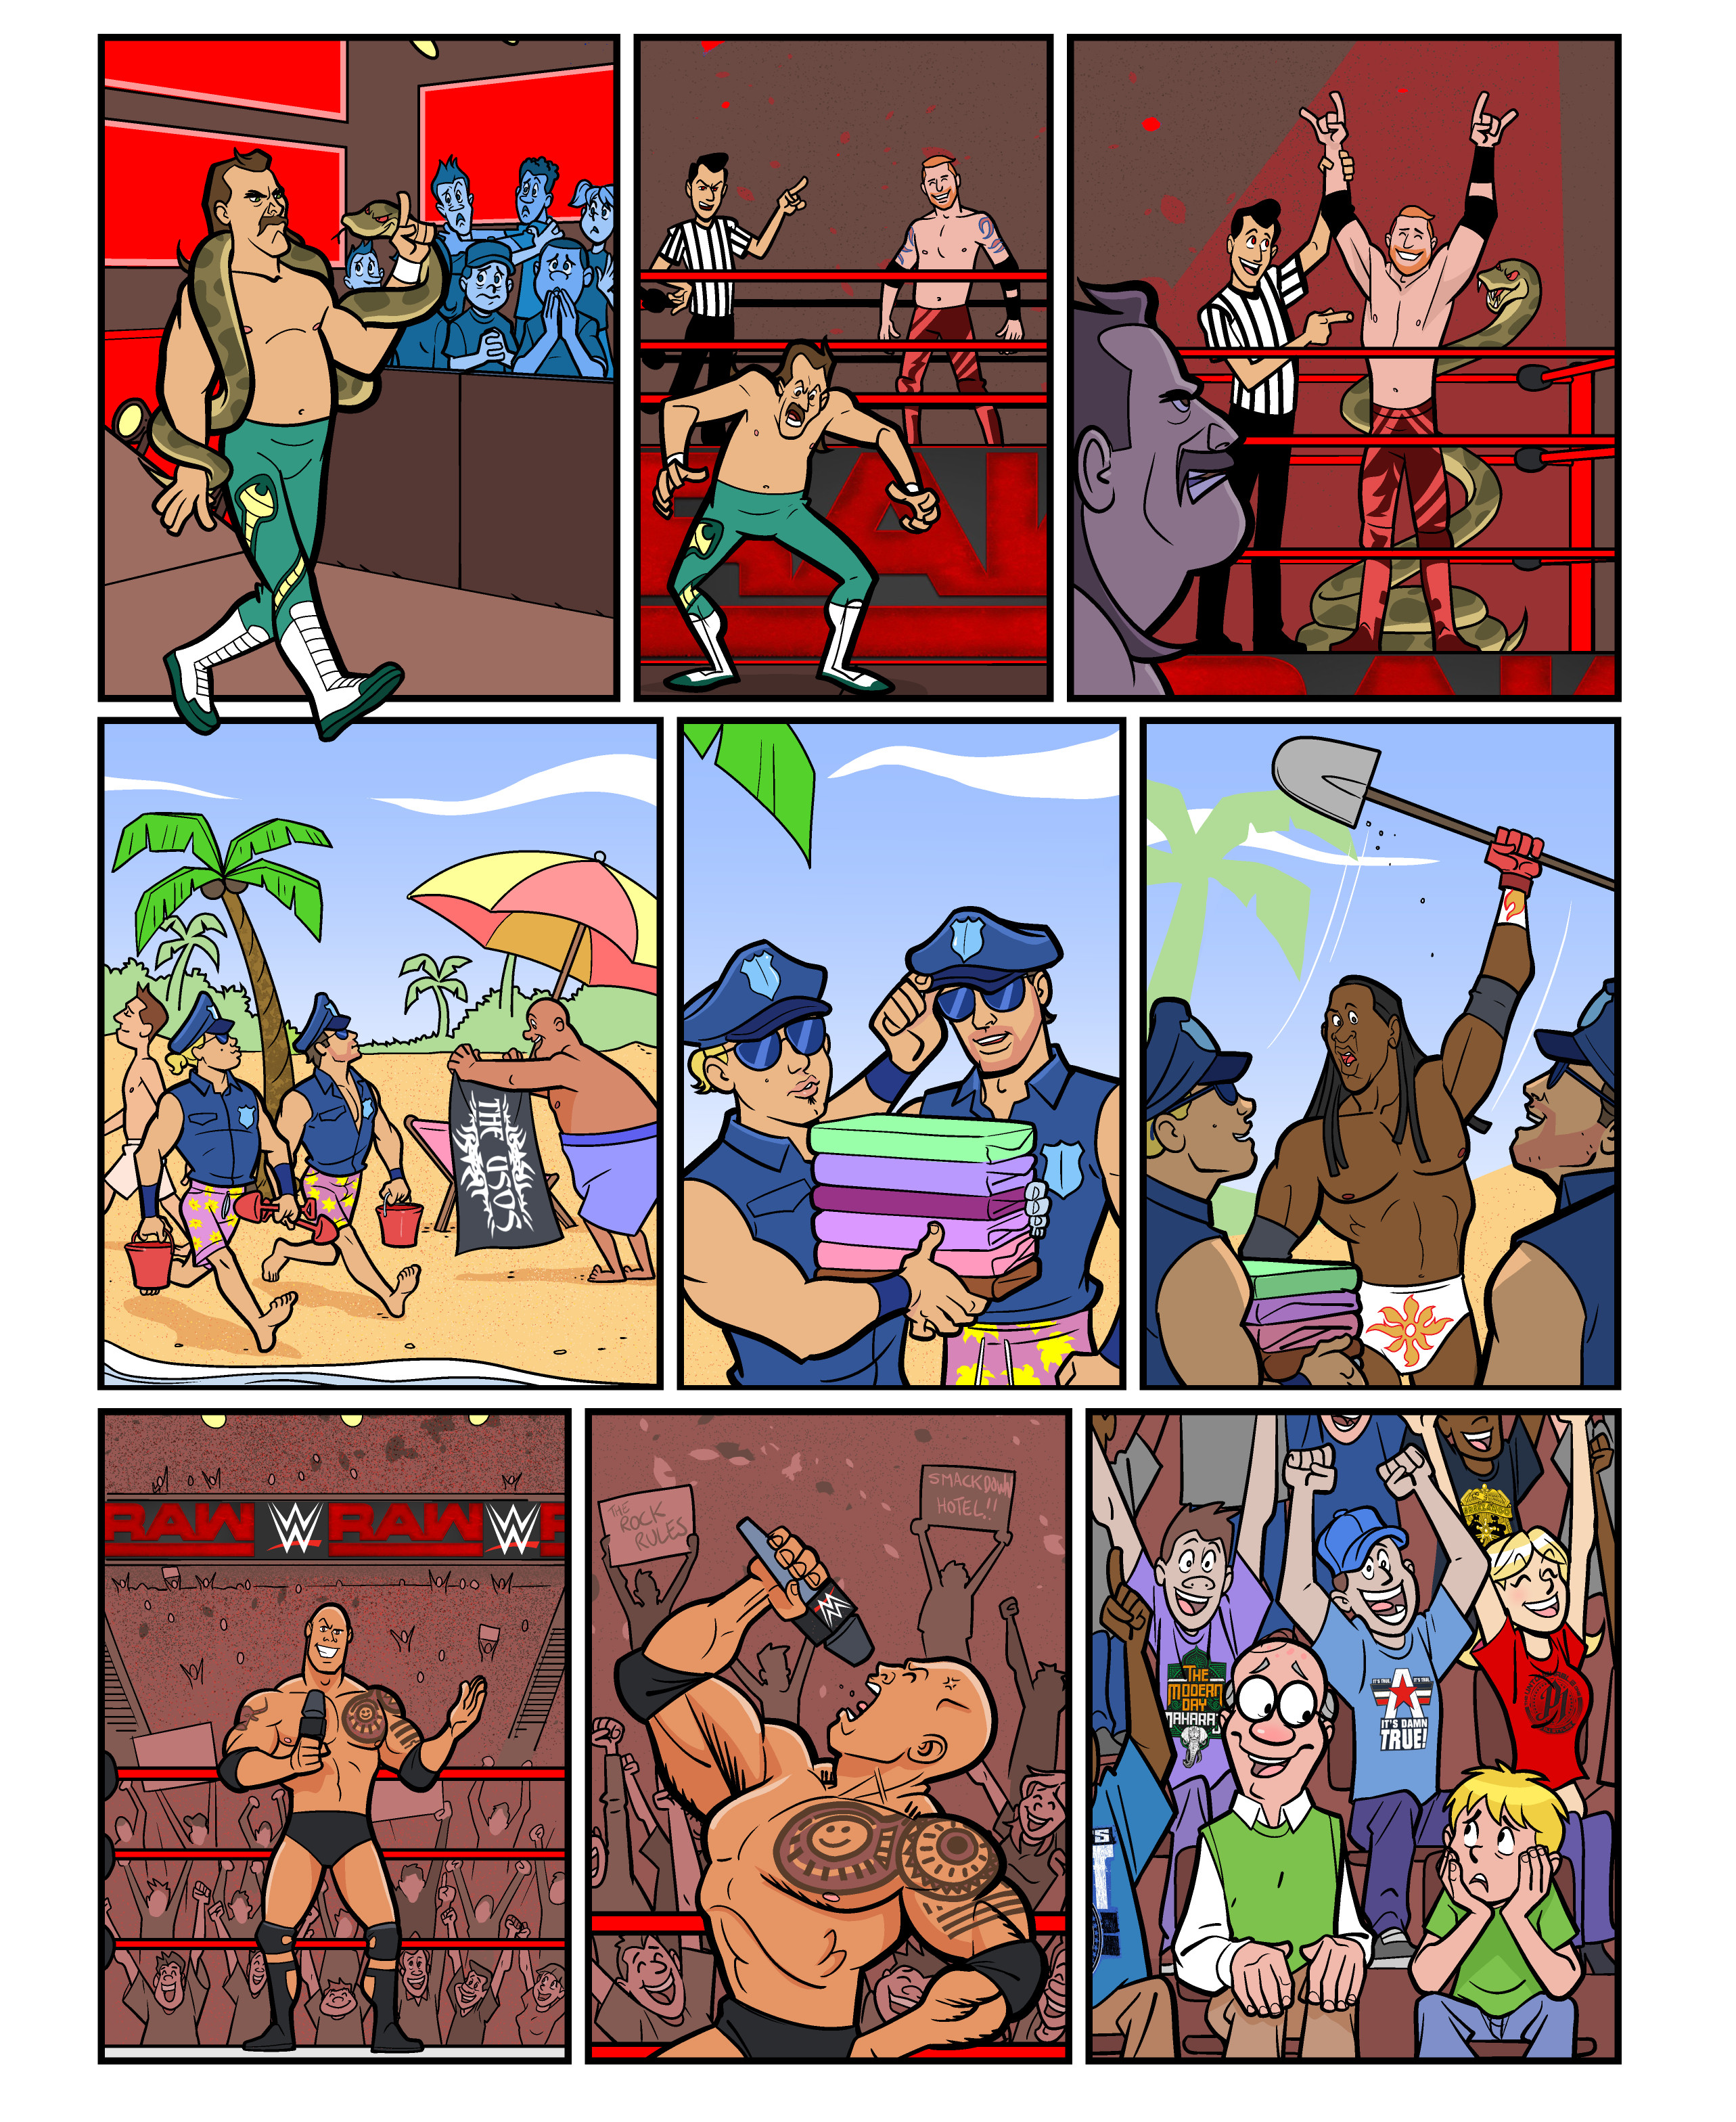 WWE Legends comic strips for WWE Kids Magazine #126